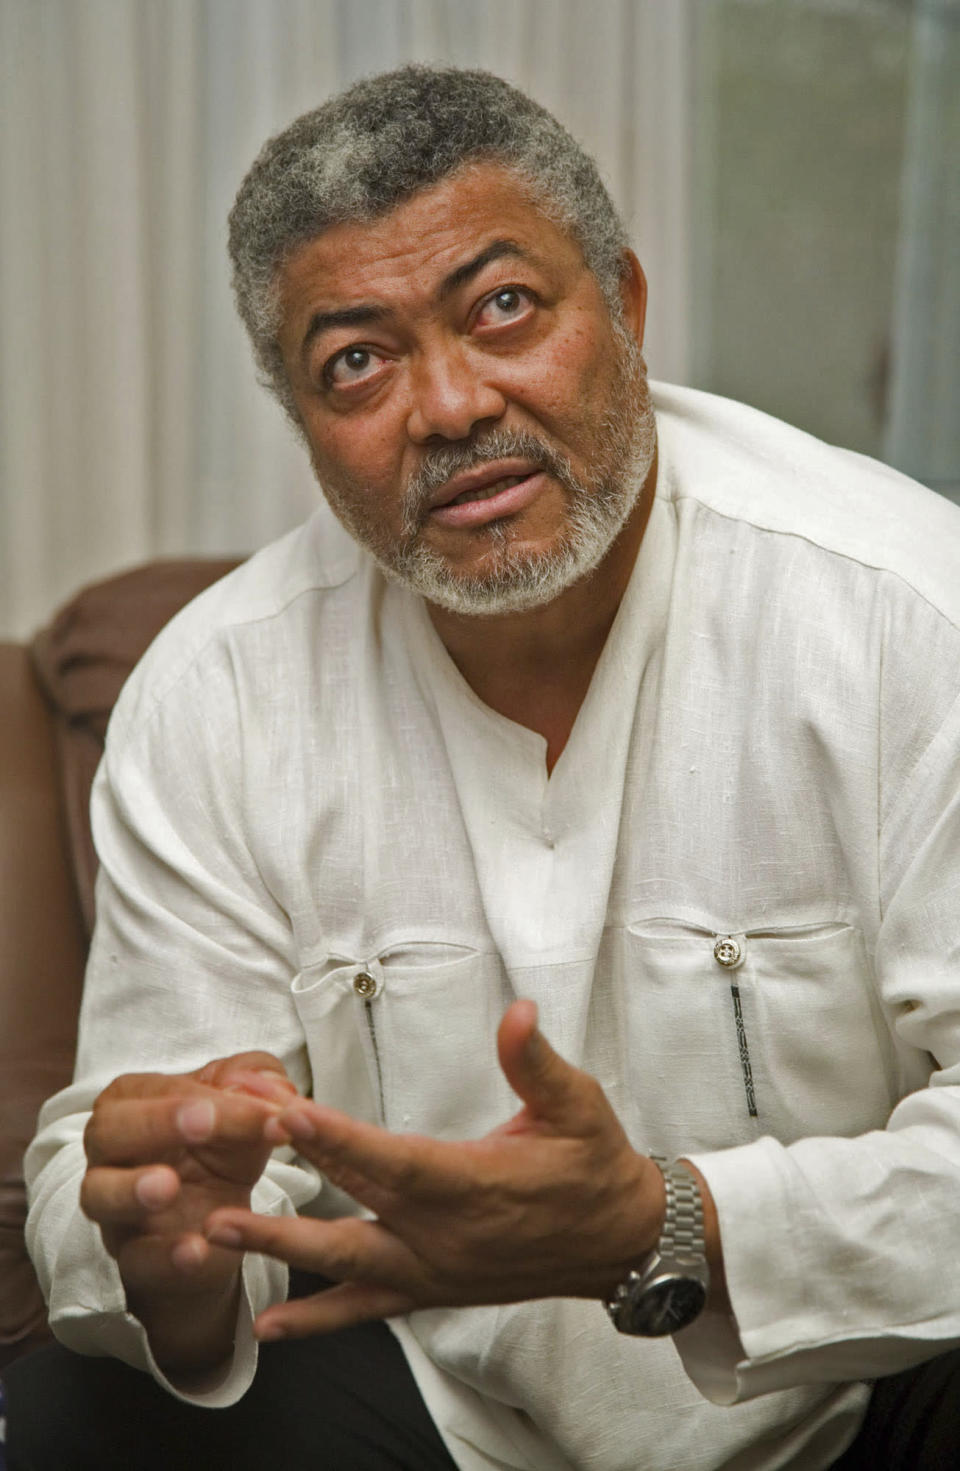 FILE - In this Monday, March 5, 2007 file photo, former Ghanaian coup leader and president Jerry Rawlings is seen during a press interview in Accra, Ghana. Ghana's former president Jerry Rawlings, who staged two coups and later led the West African country's transition to a stable democracy, has died aged 73, according to the state's Radio Ghana and the president Thursday, Nov. 12, 2020. (AP Photo/Olivier Asselin, File)